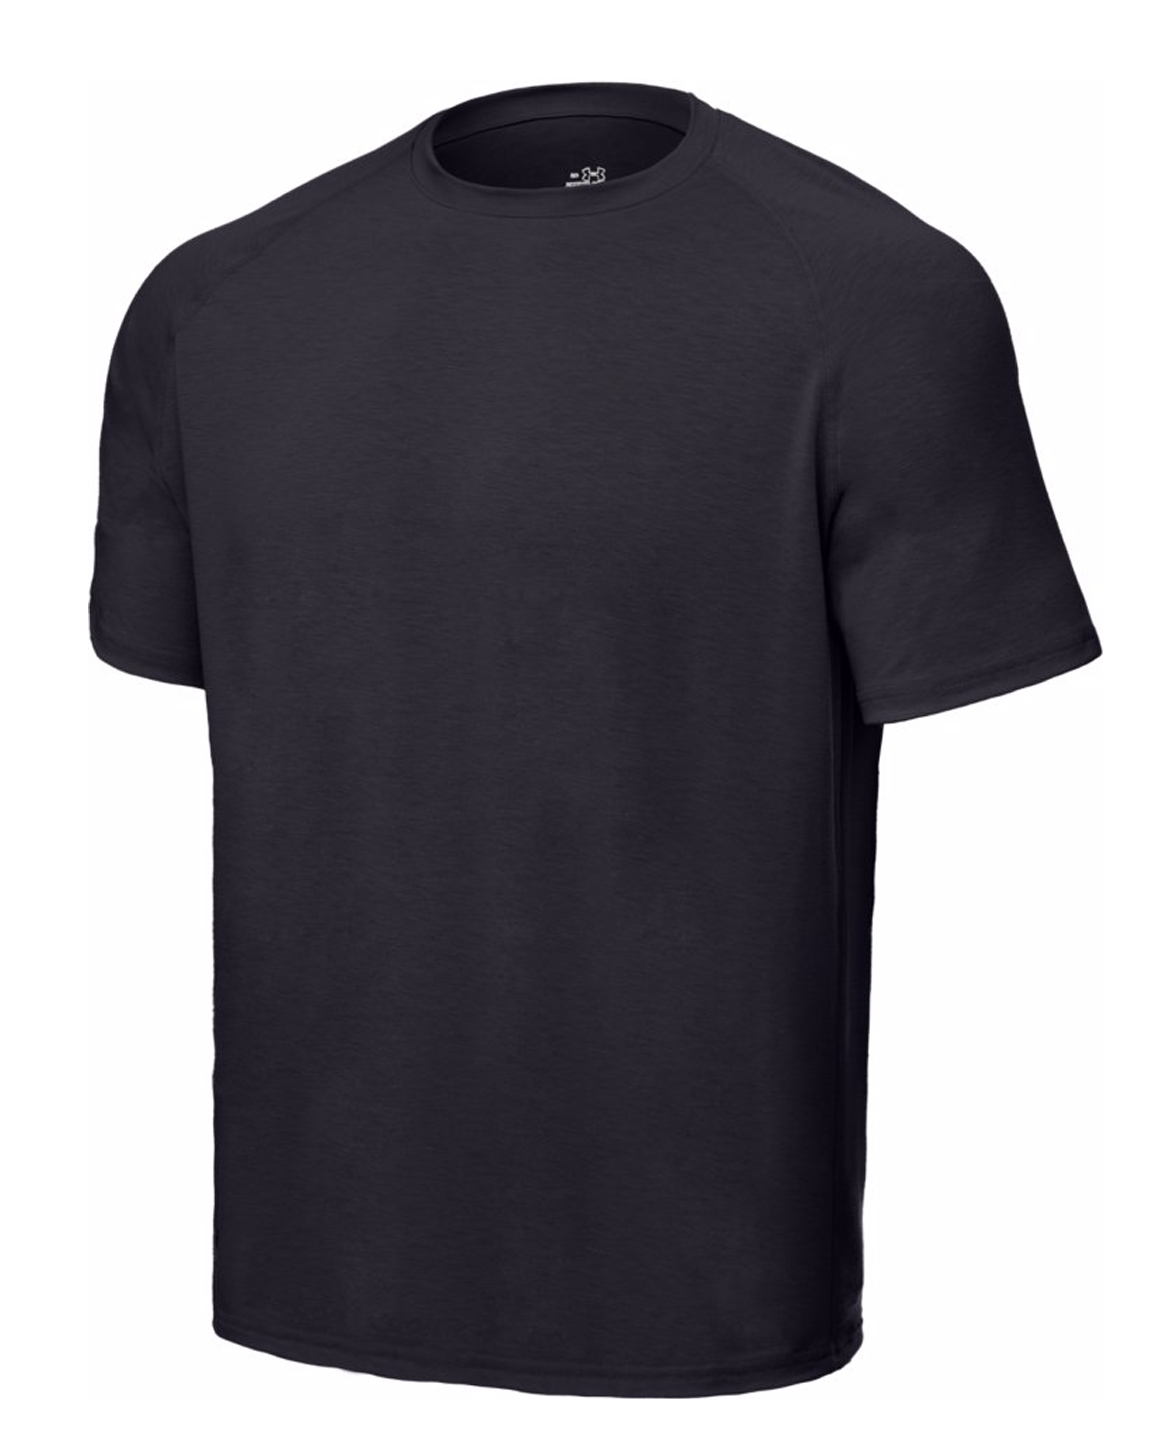 Under armour 1005684 men s ua tactical tech short sleeve for Under armour men s tech short sleeve t shirt